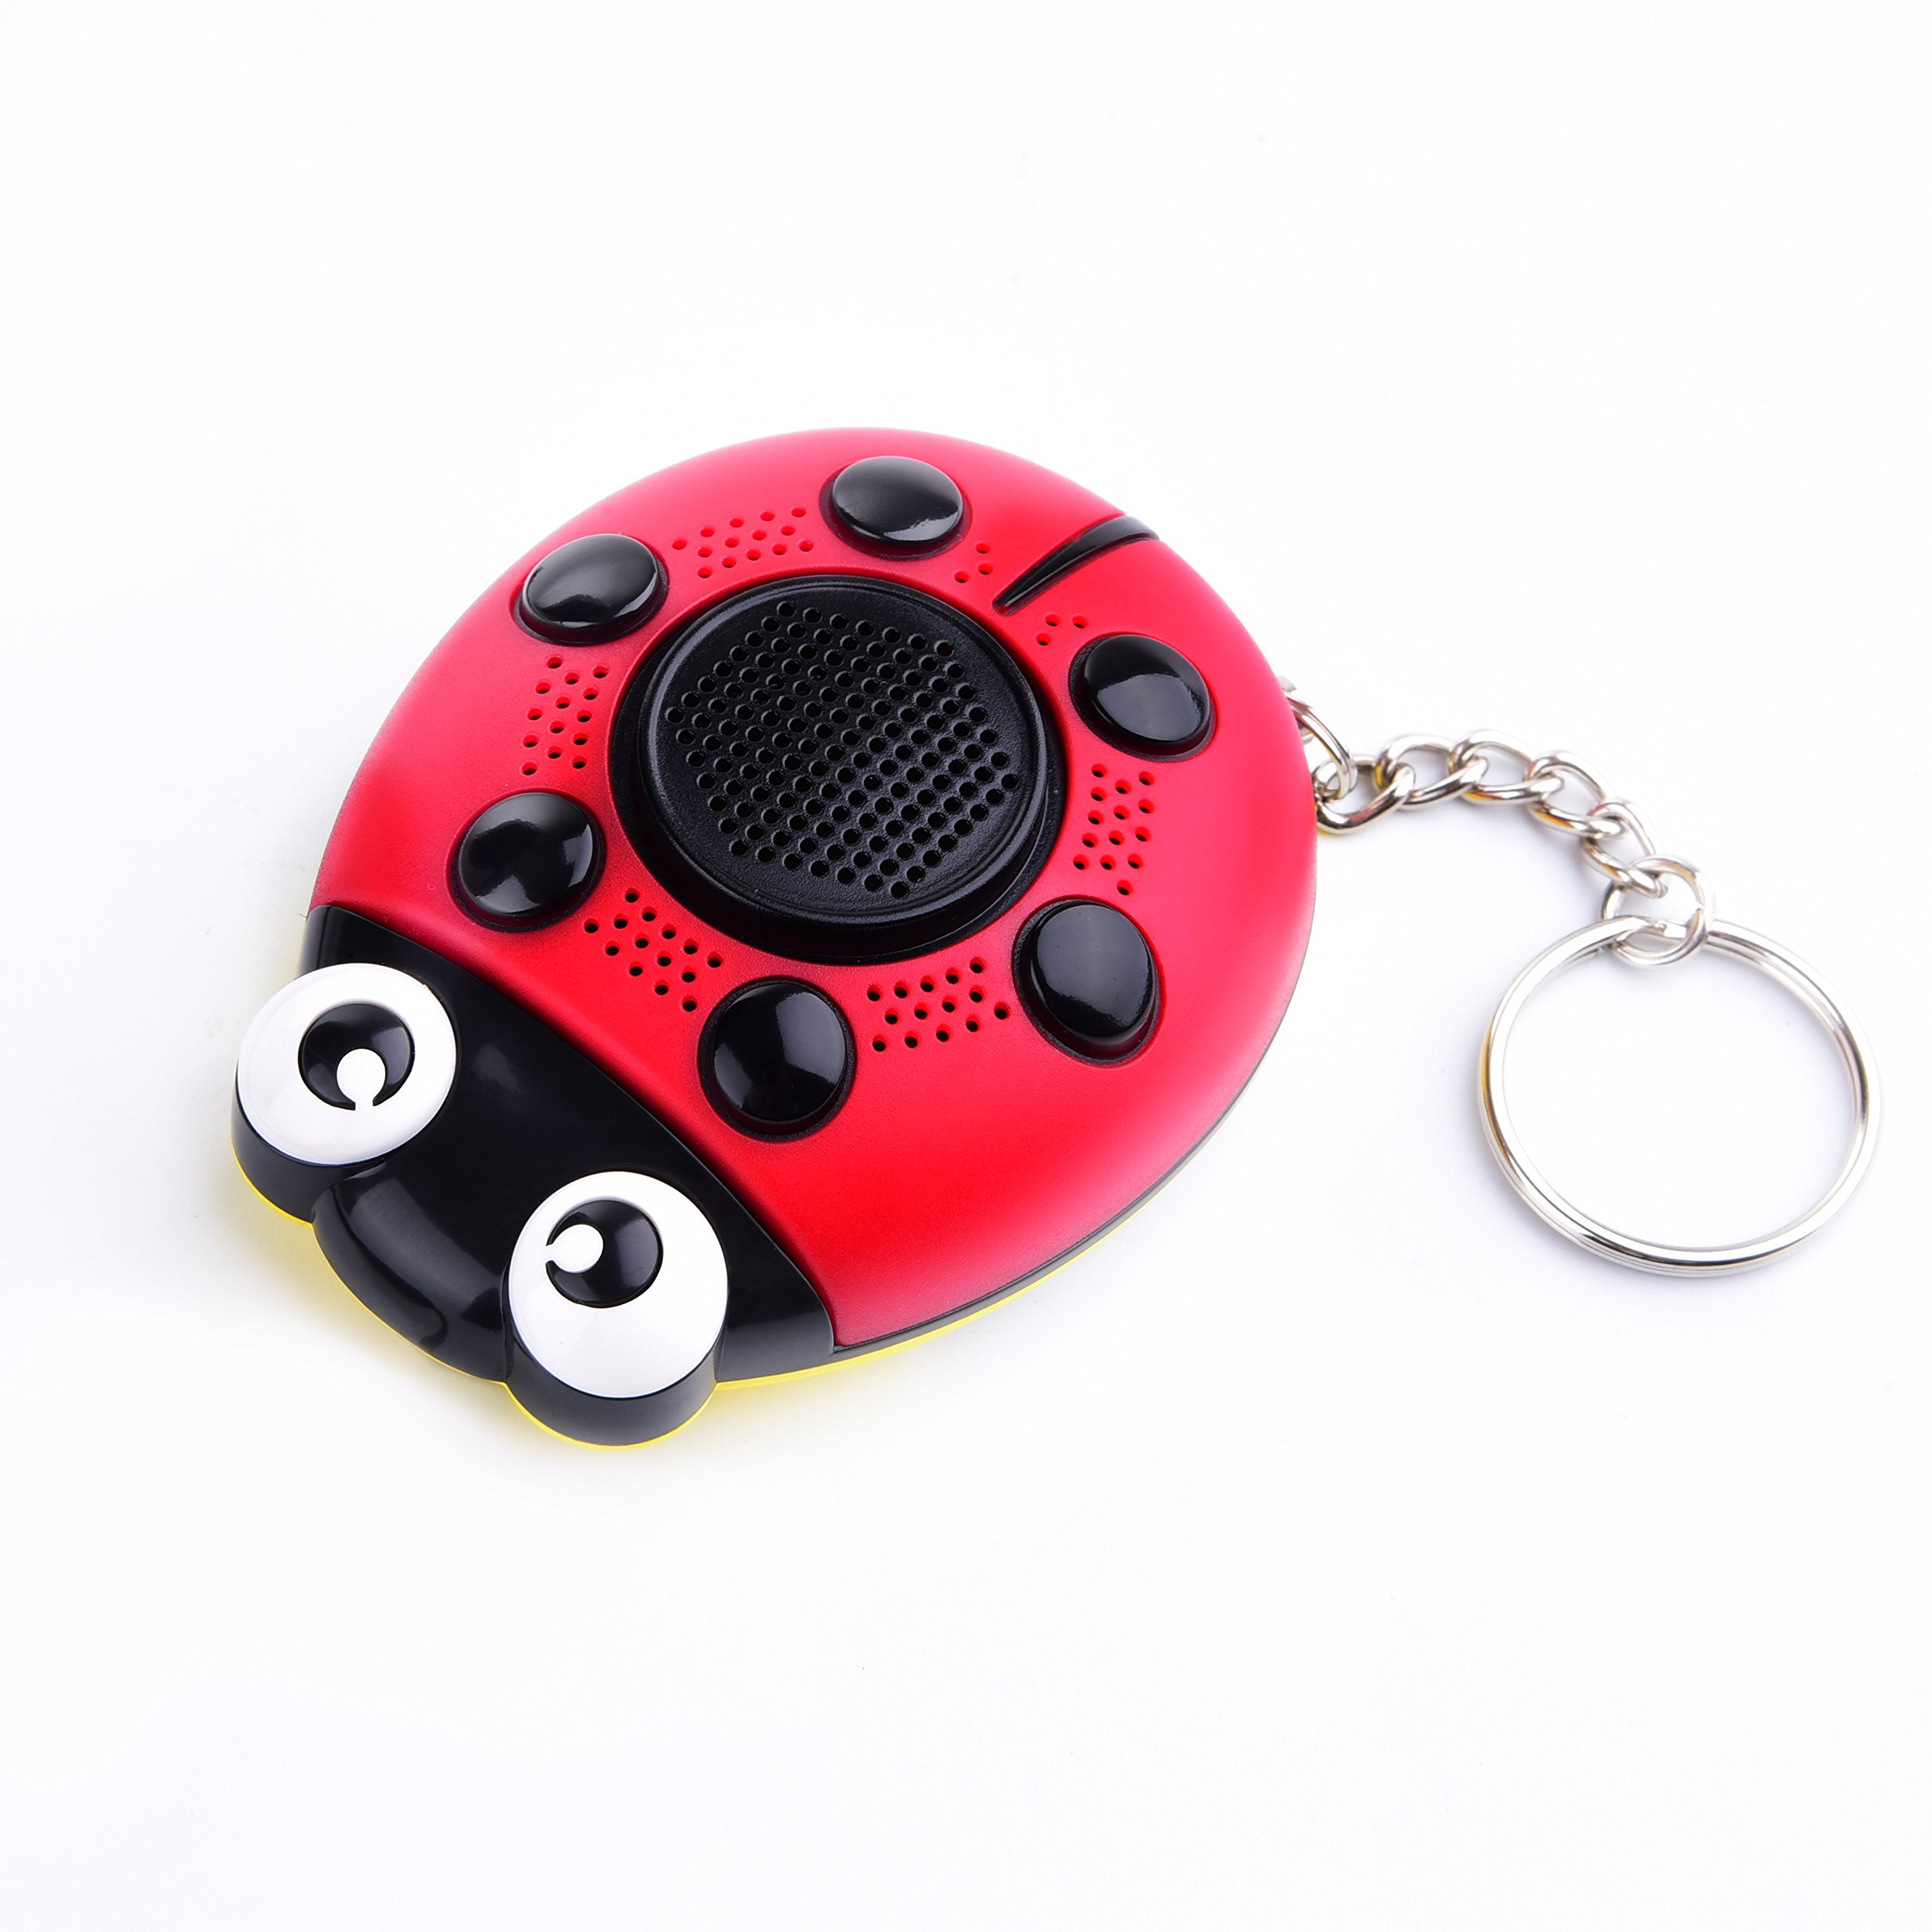 iDaye 130DB SOS with siren song voice Ladybug Emergency Personal alarm keychain,Protection Device with colorful flash work for kids/elderlies/owls and adults,Used as a speaker or electric torch. by iDaye (Image #2)